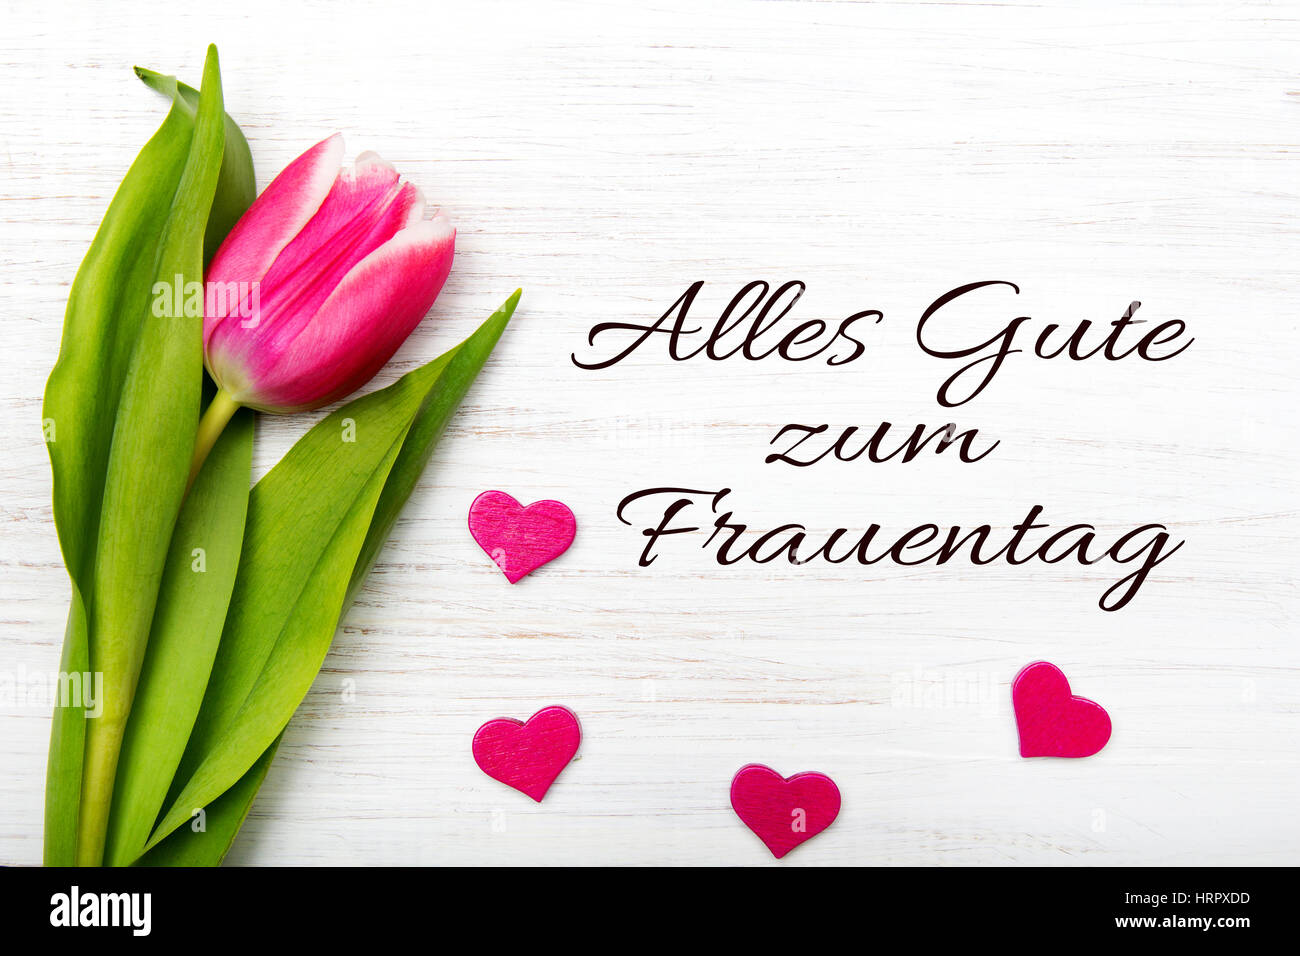 Womens day card with german words alles gute zum frauentag womens day card with german words alles gute zum frauentag all the best for womens daytulip flower and small heart on white wooden background kristyandbryce Image collections